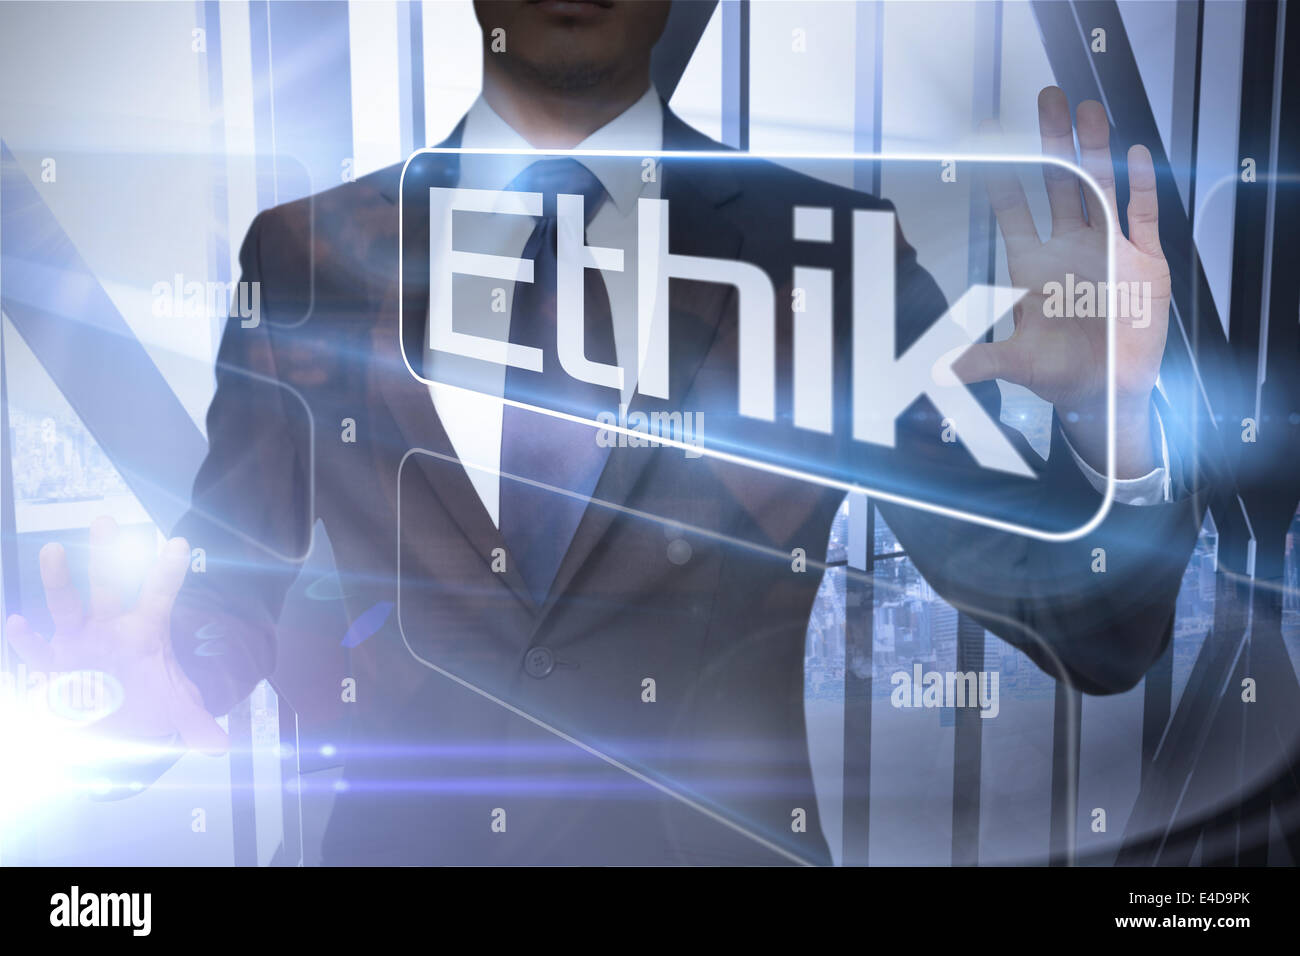 Businessman presenting the word ethics in german - Stock Image